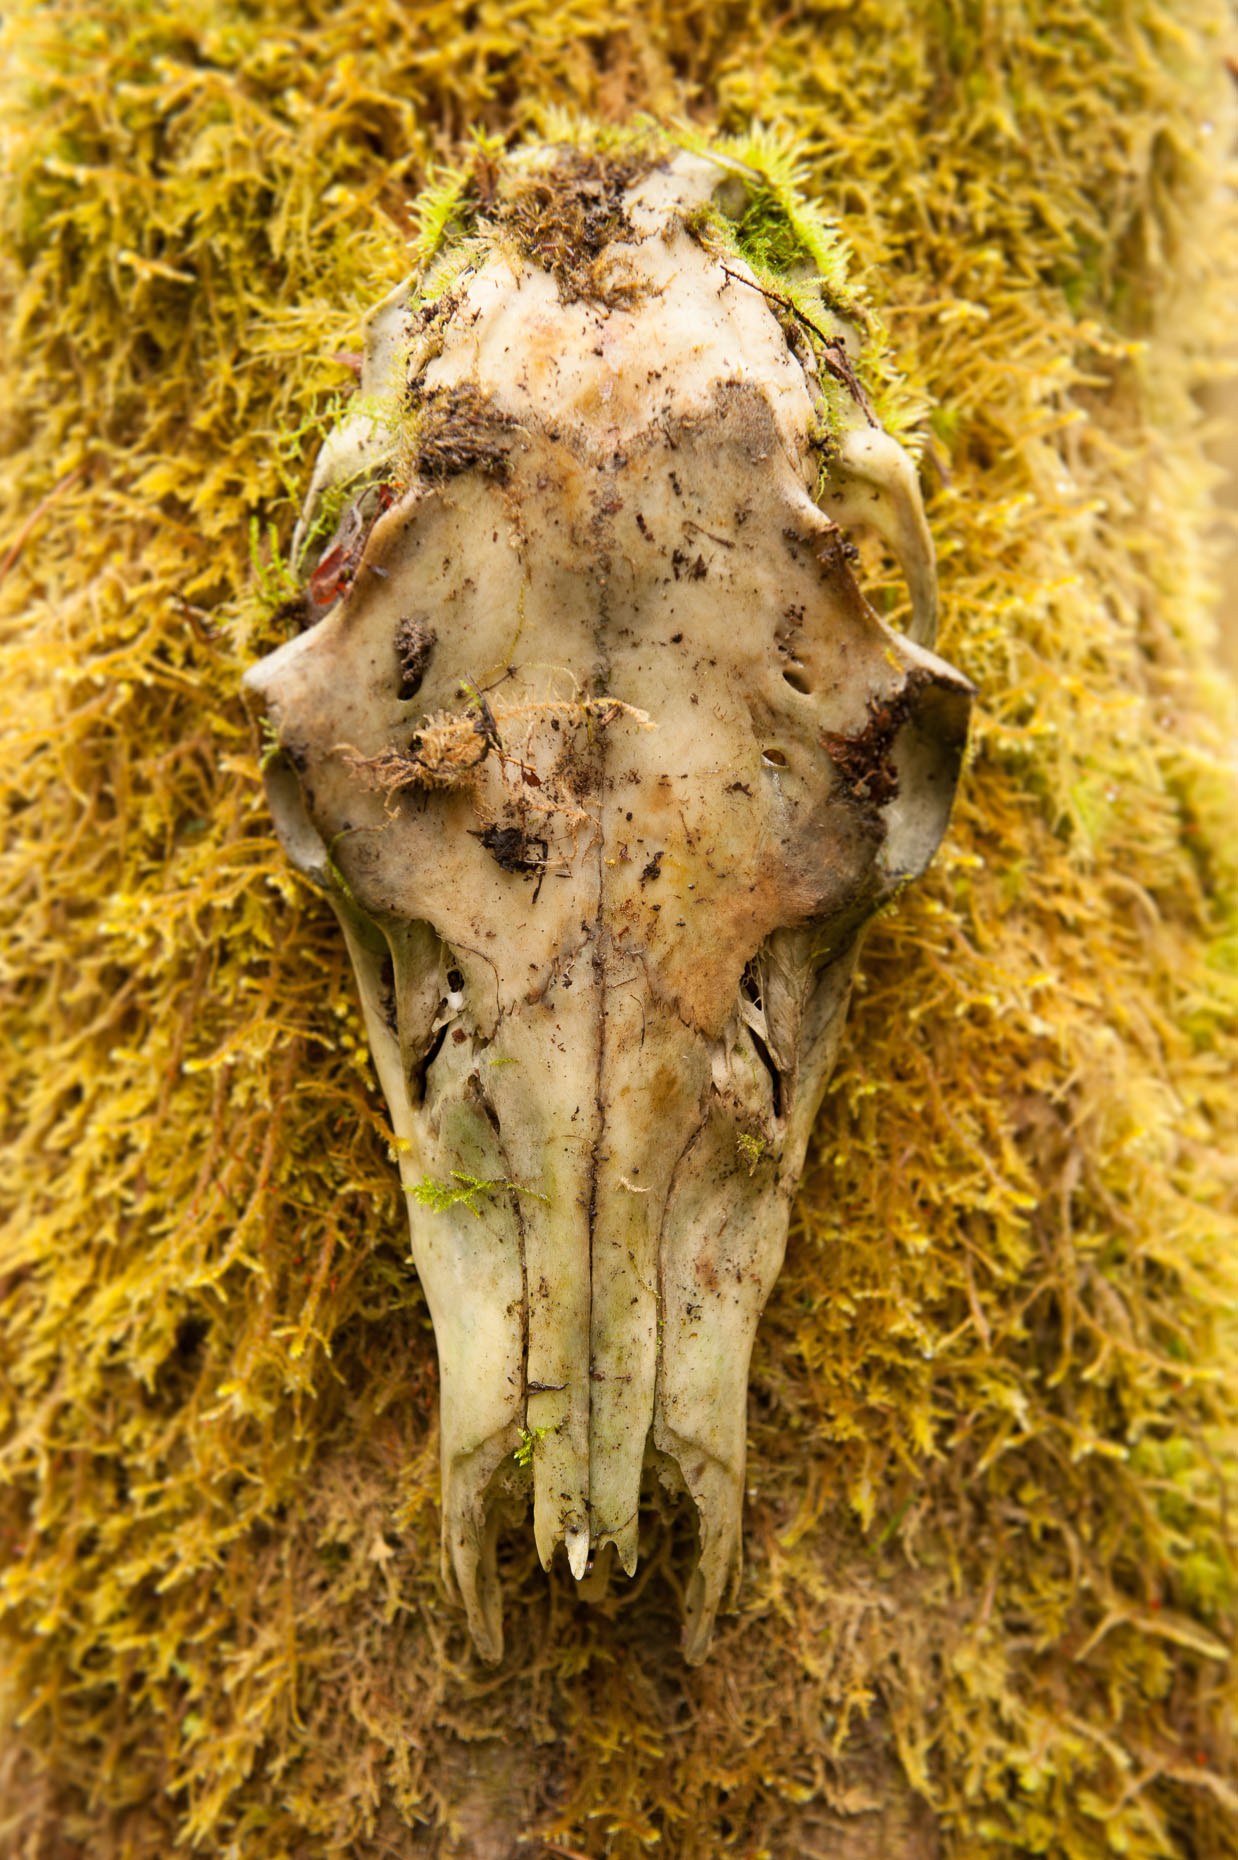 Decomposing deer skull covered in forest moss.